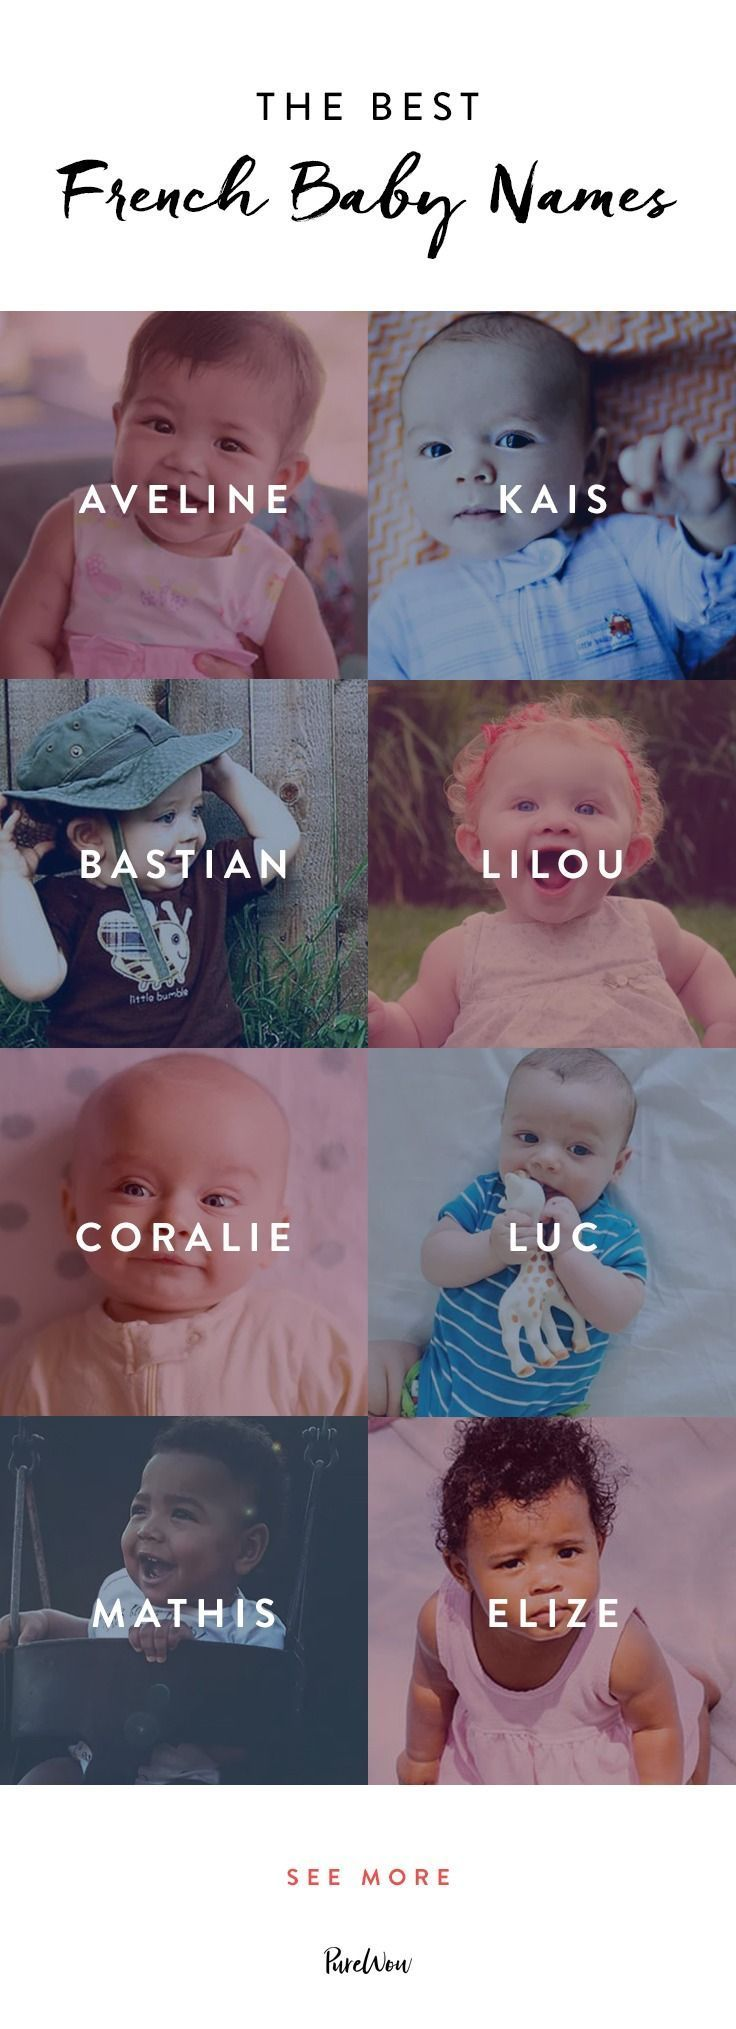 17 French Baby Names That Are Prime for an America…